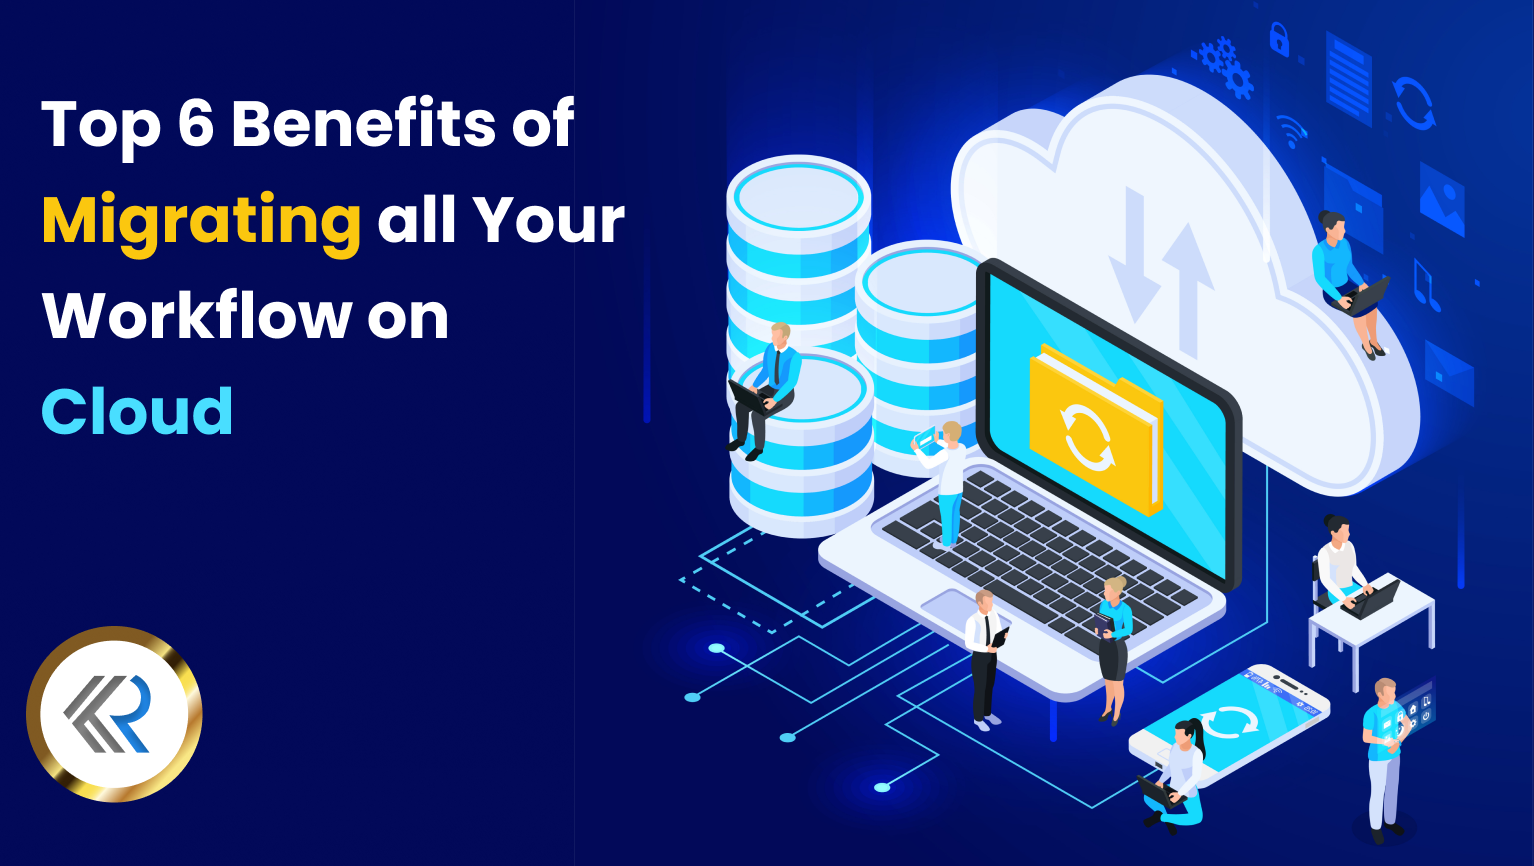 Top 6 Benefits of Cloud Migration